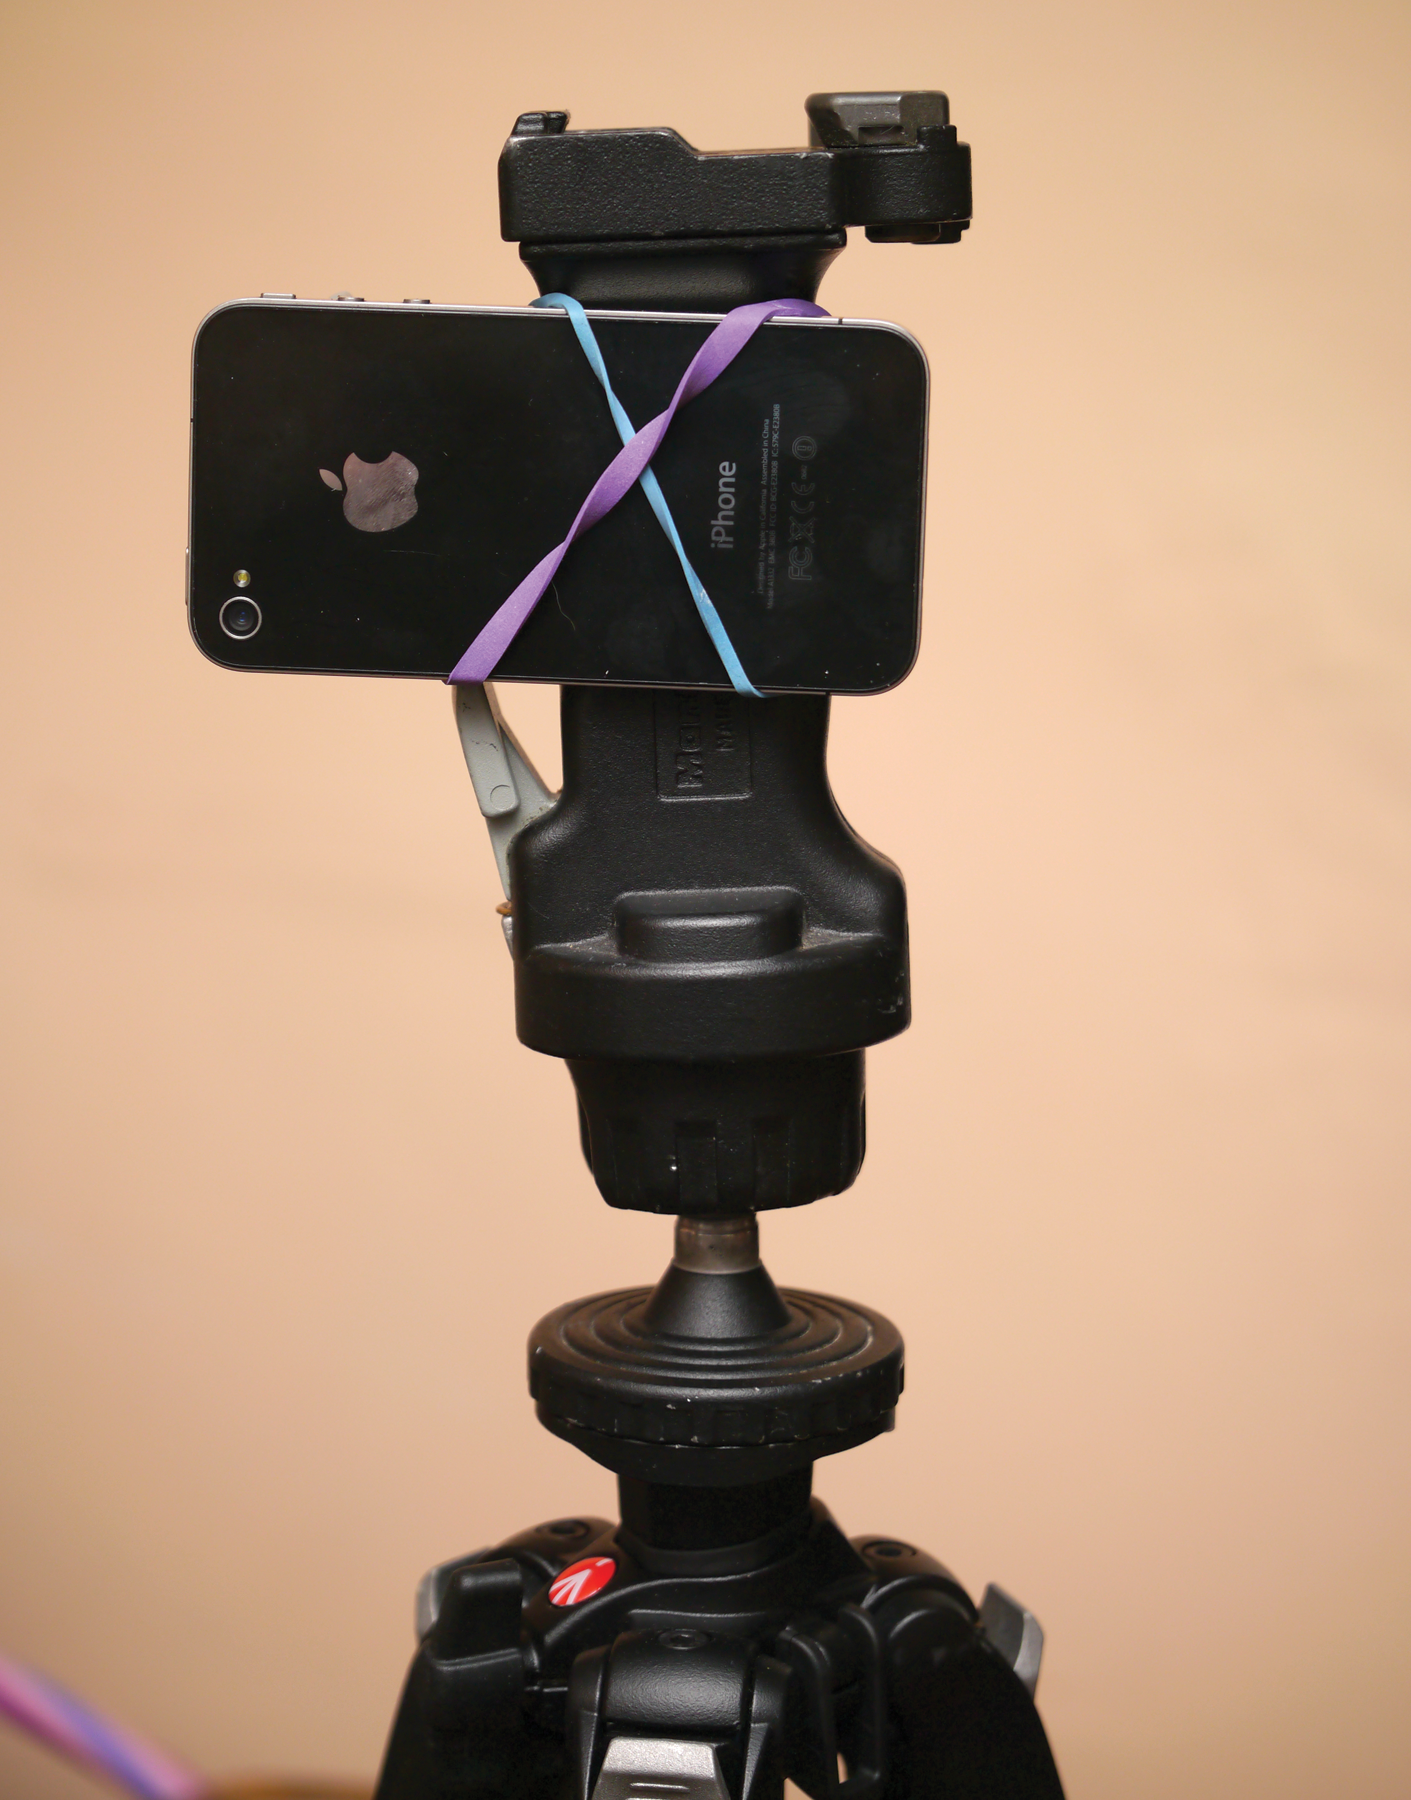 Shot of a professional tripod with an iPhone attached using two criss-crossed rubber-bands